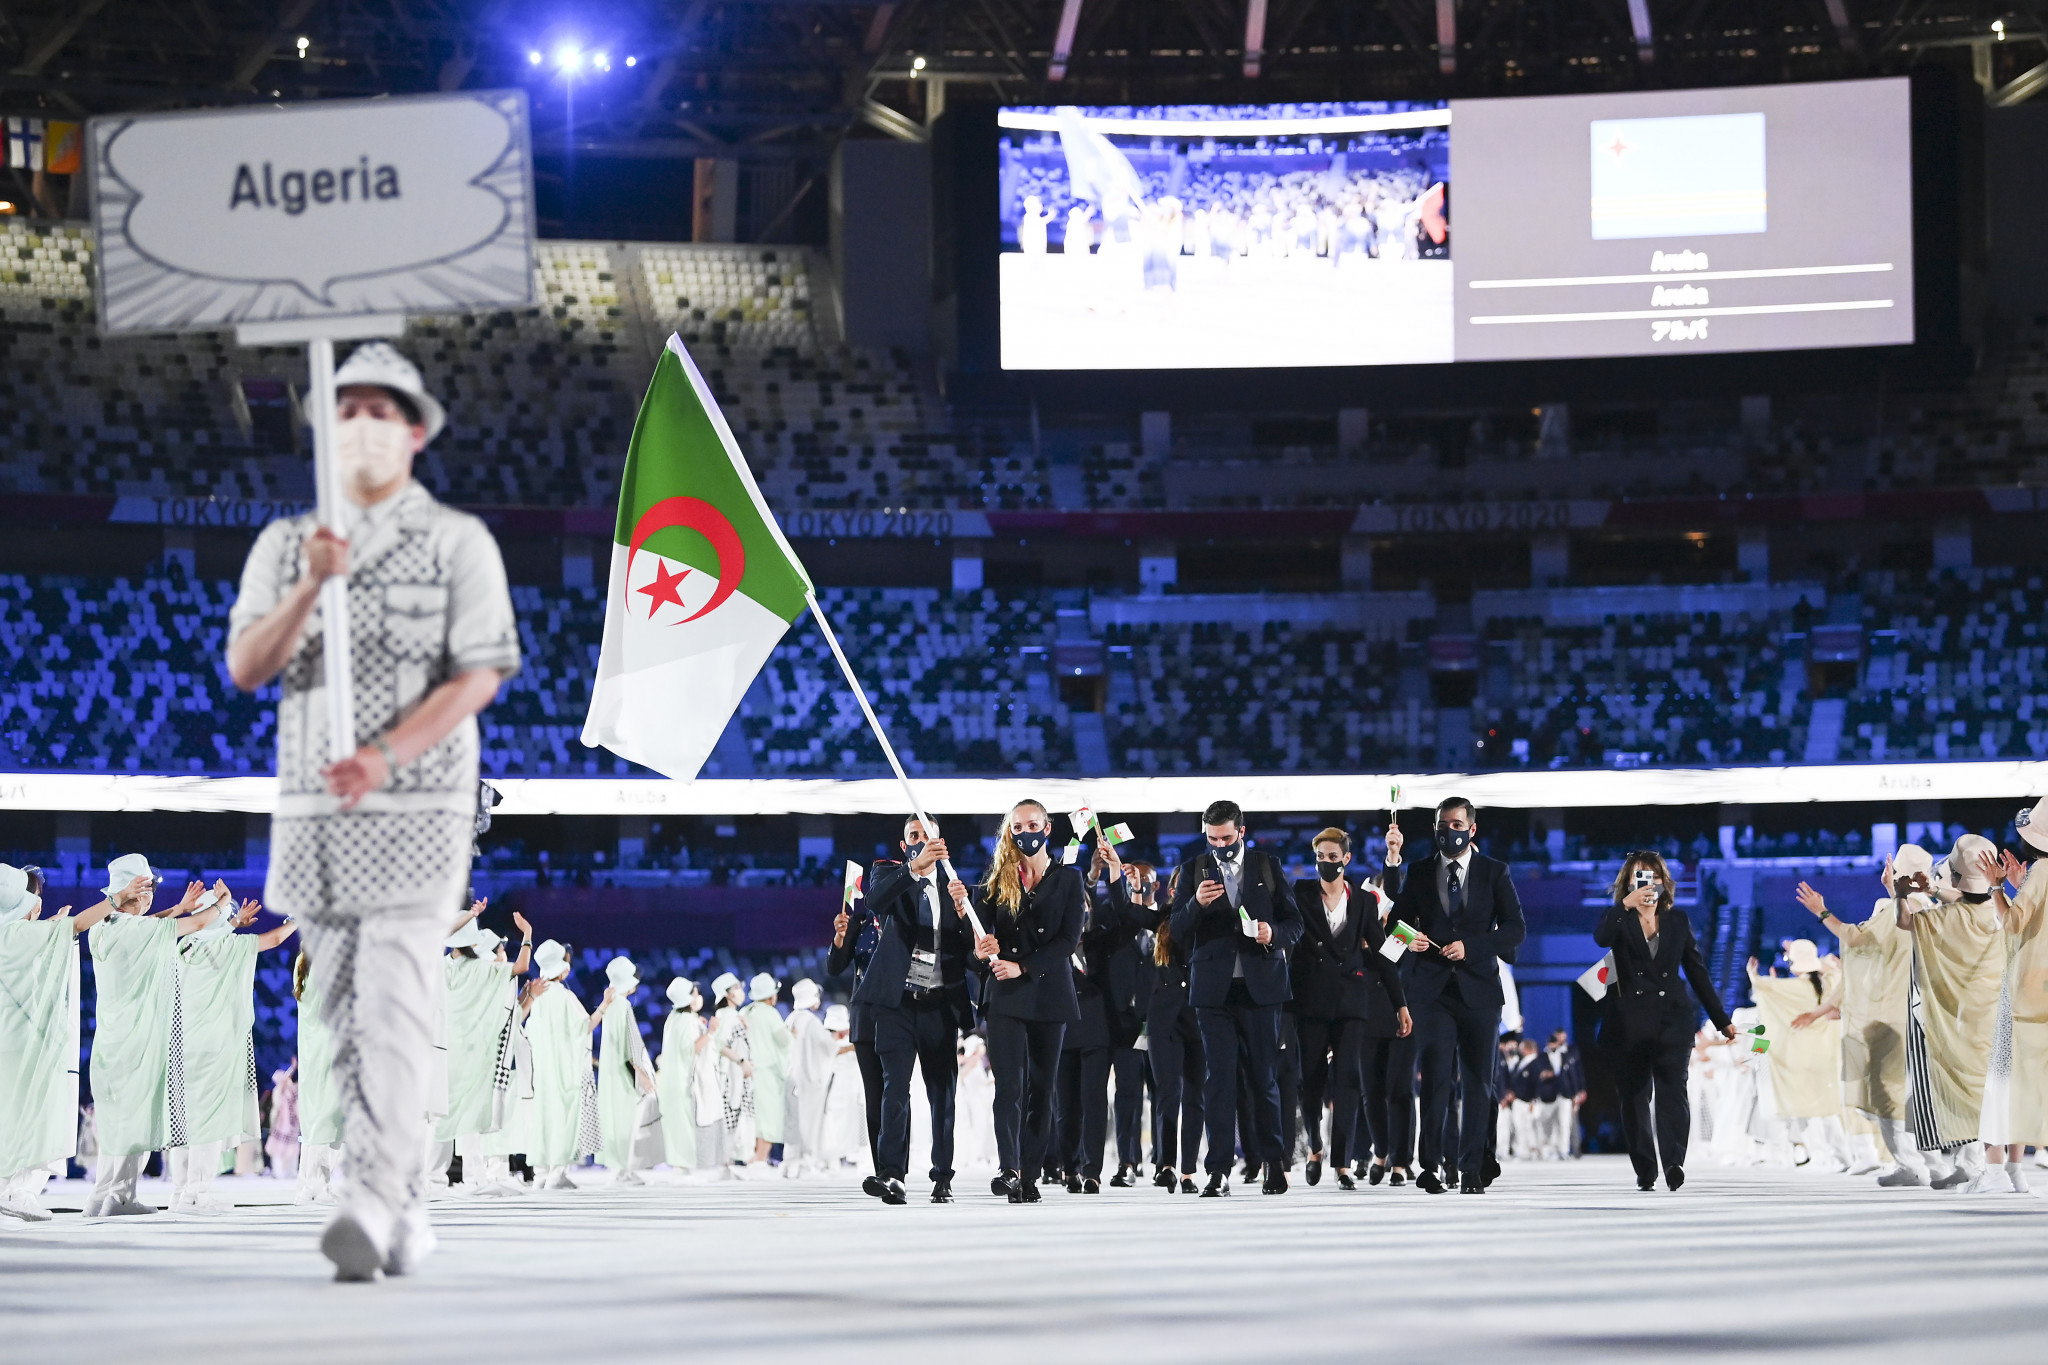 New Athletes' Commission installed at Algerian Olympic Committee